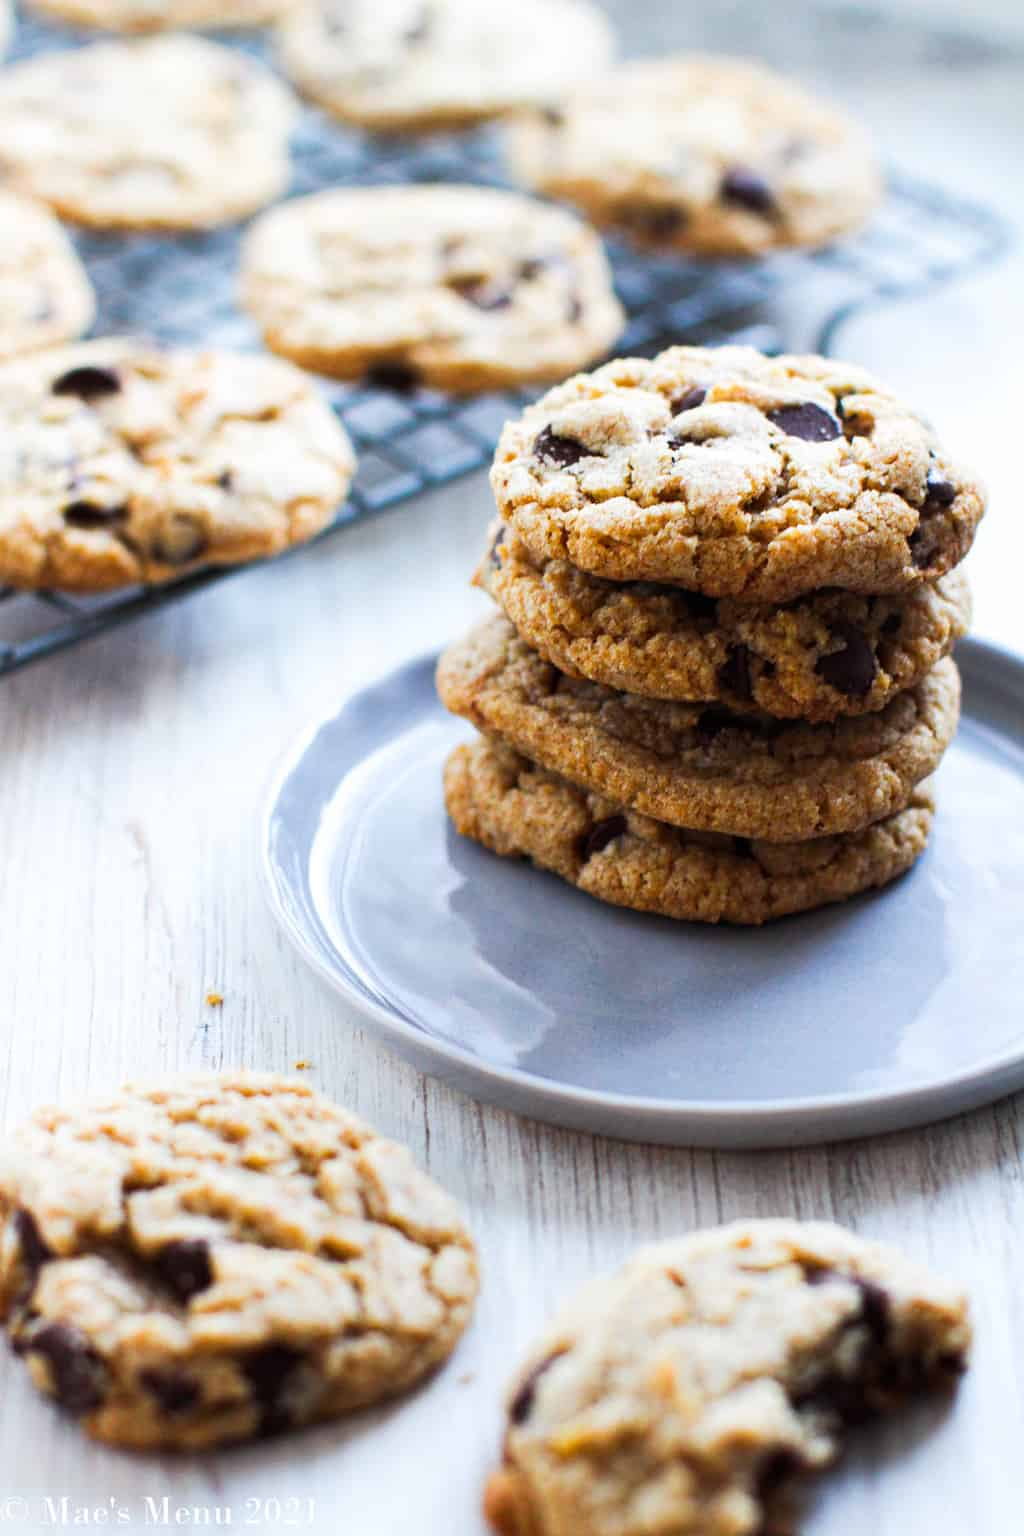 A stack of whole wheat chocolate chip cookies on a navy blue plate in front of a cooling rack full of cookies